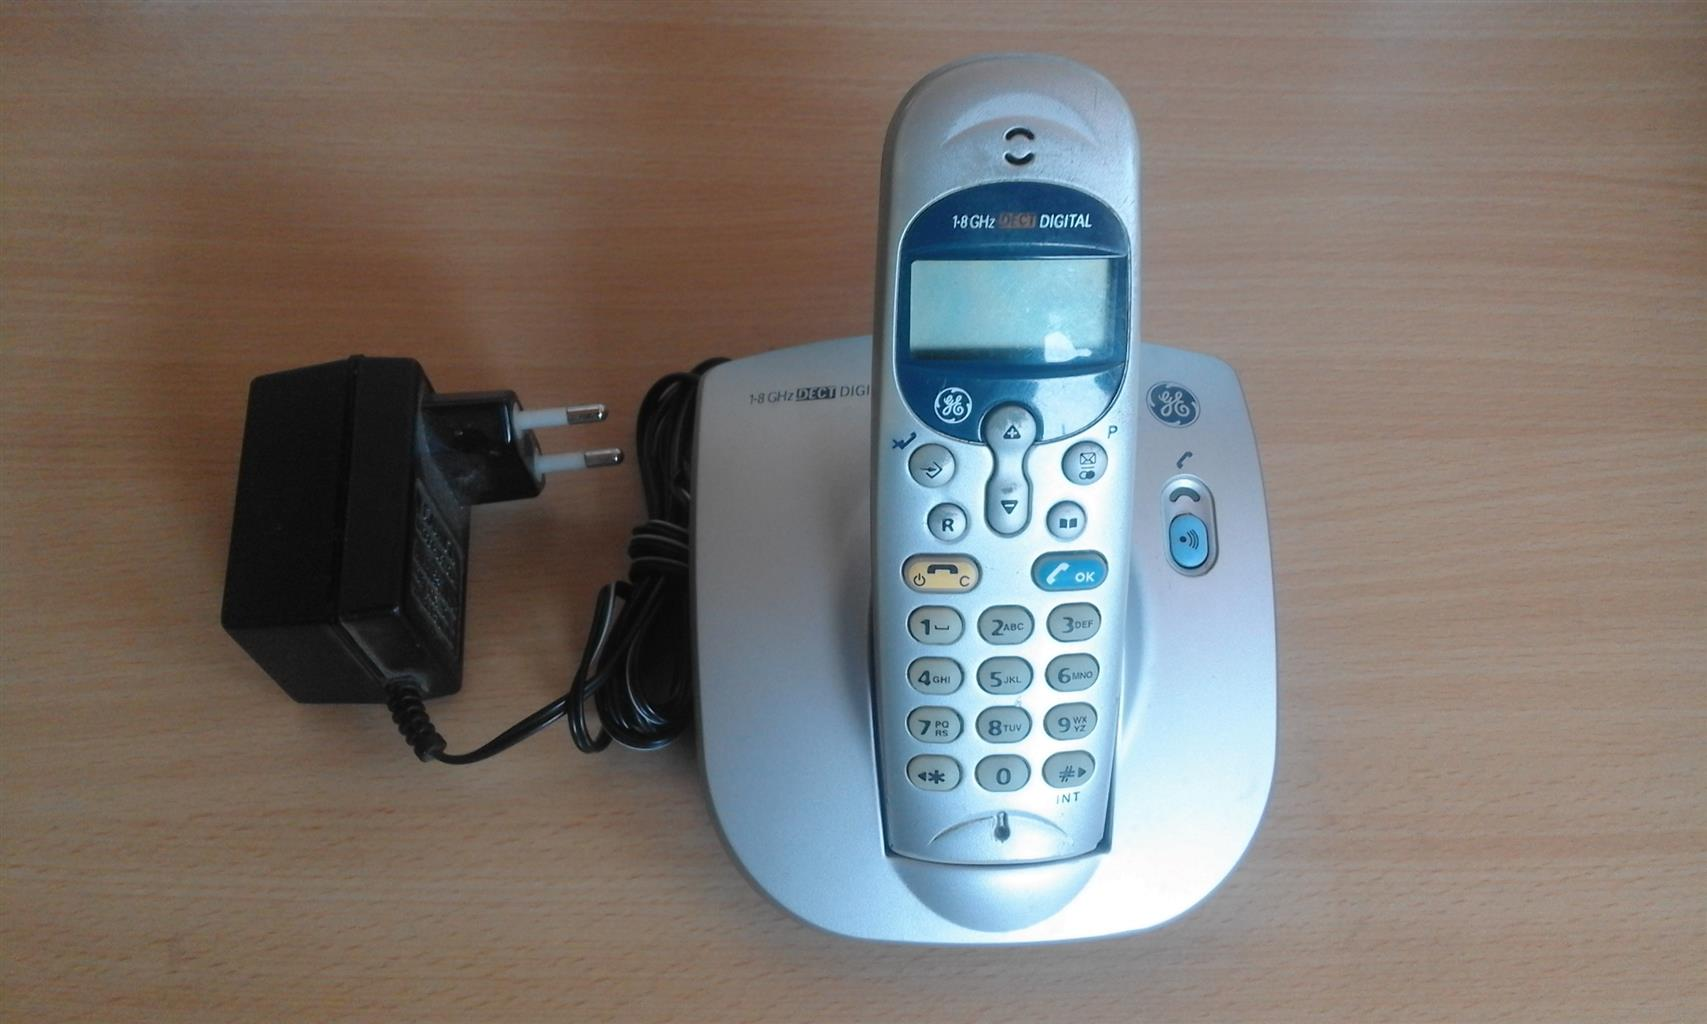 Portable Fixed Line Telephone Handsets General  Electric. With LCD Screen,Caller ID, Intercom Phonebook etc . Light or Dark Grey Colour.  R295.